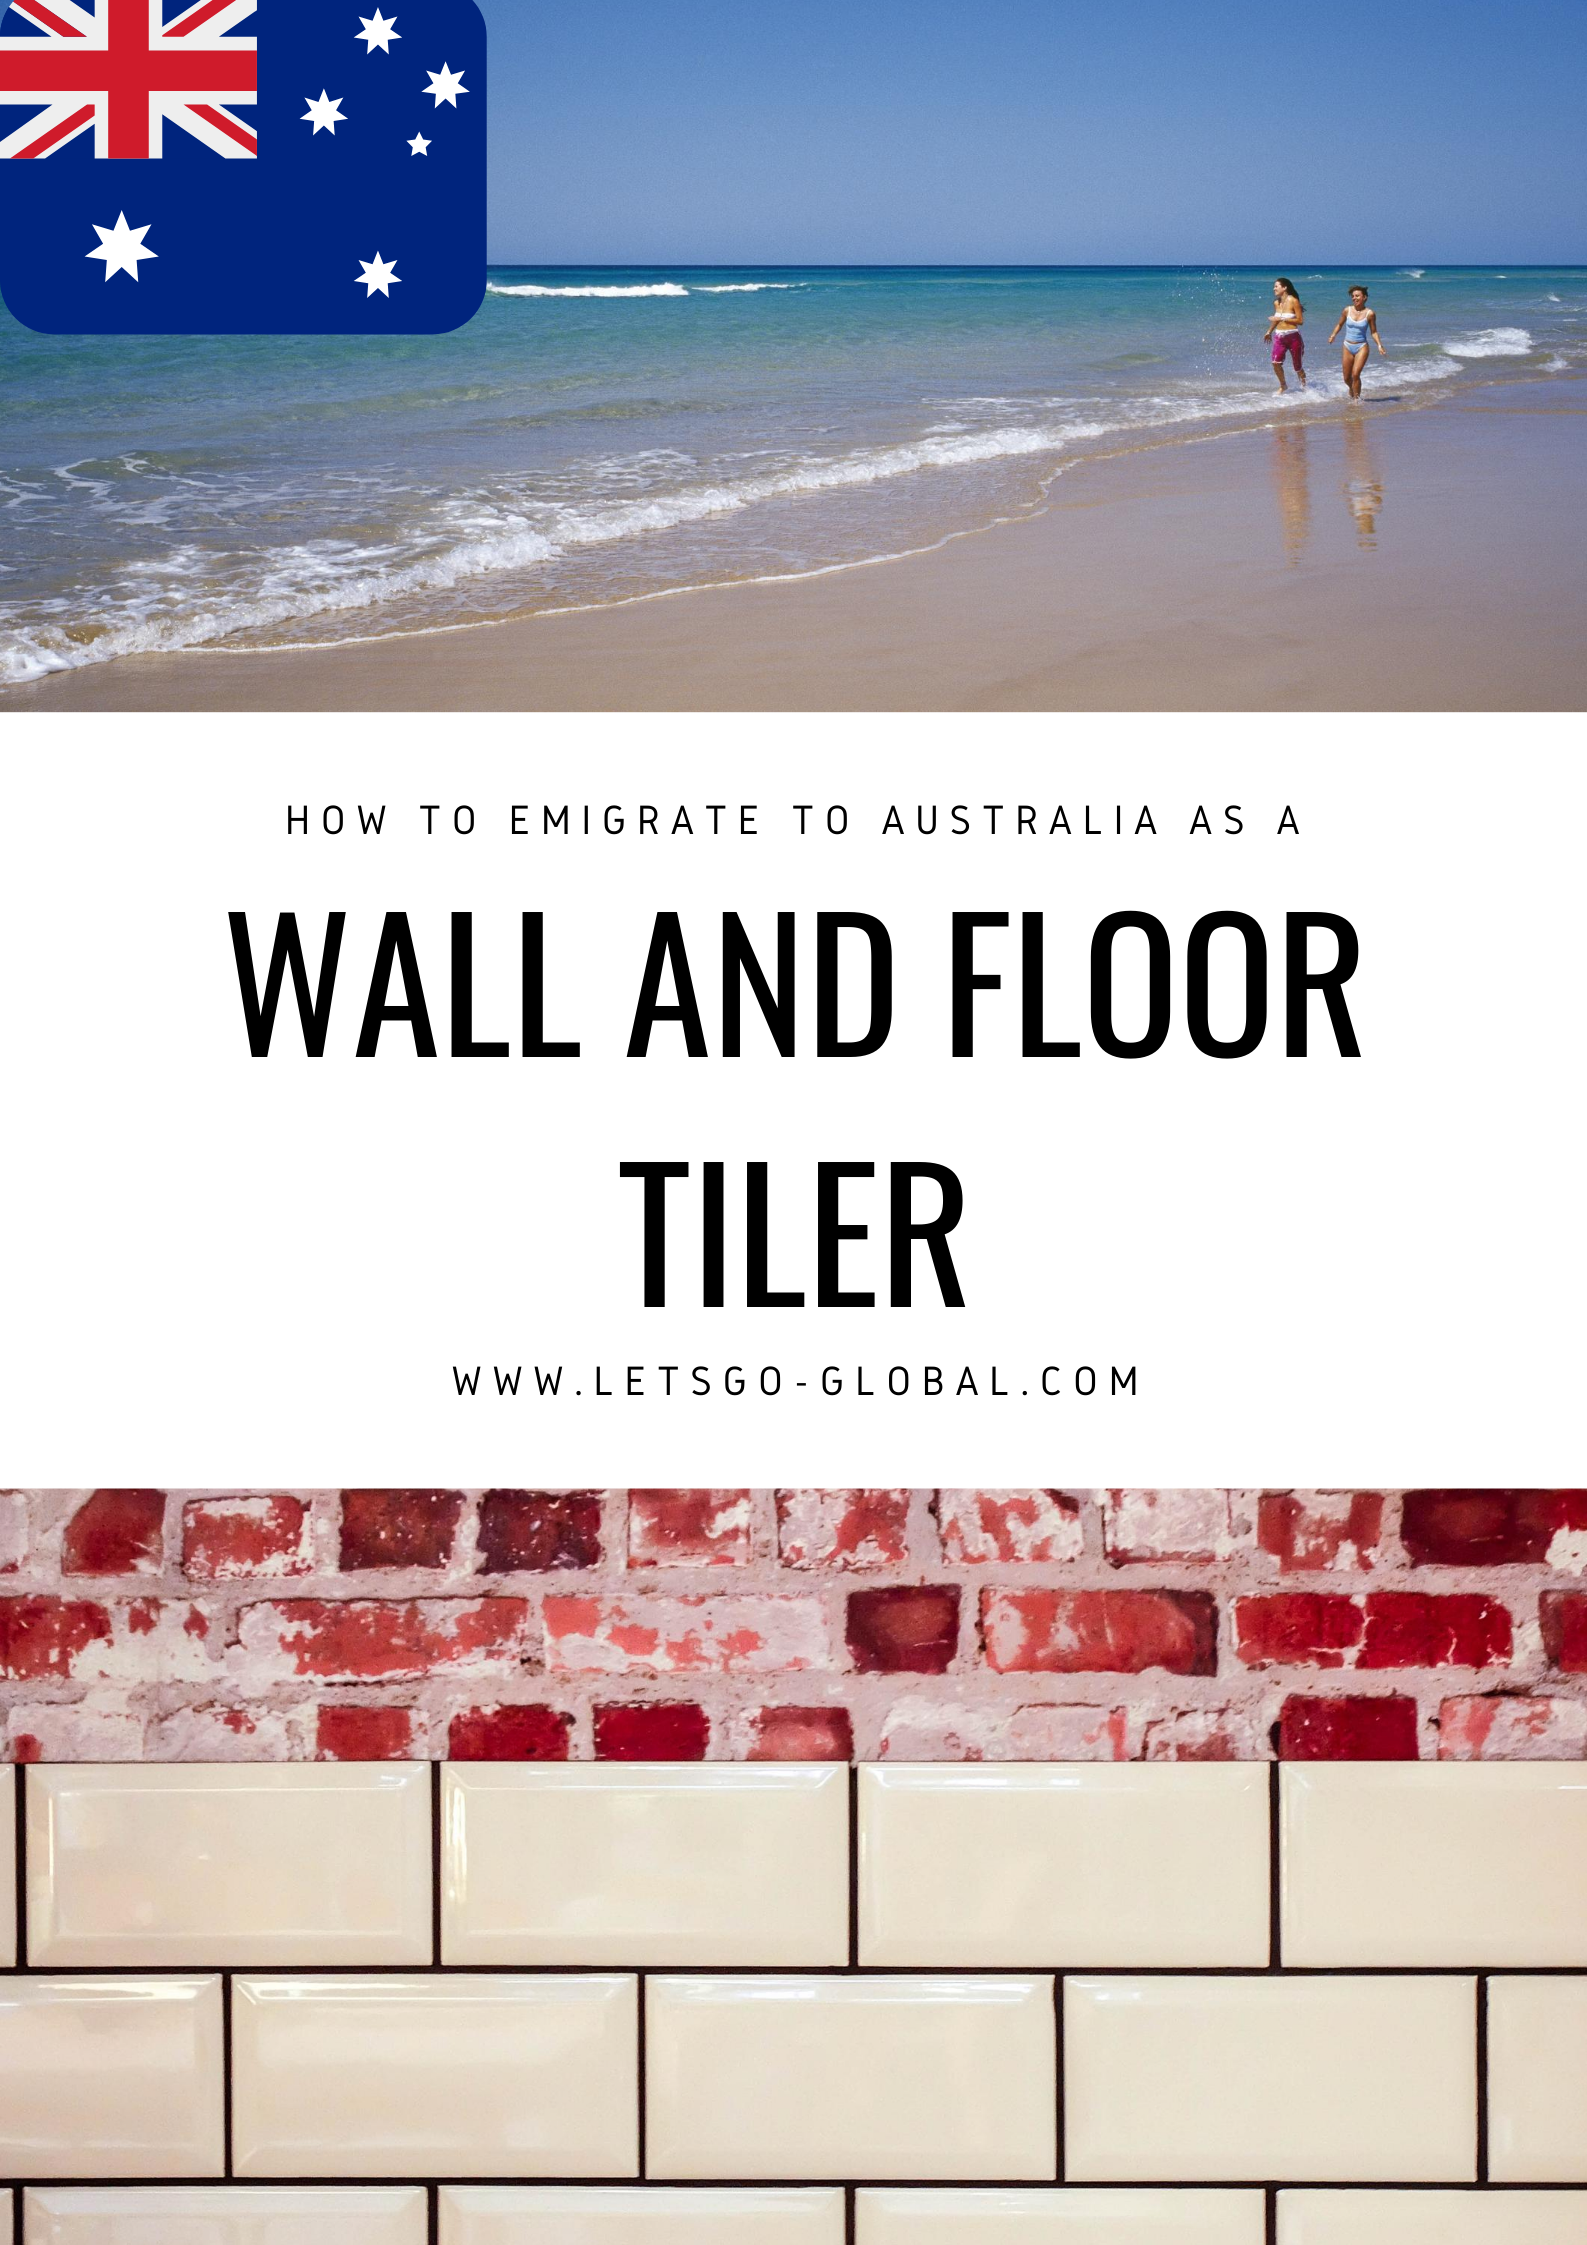 Migrate to Australia as a Wall and Floor Tiler